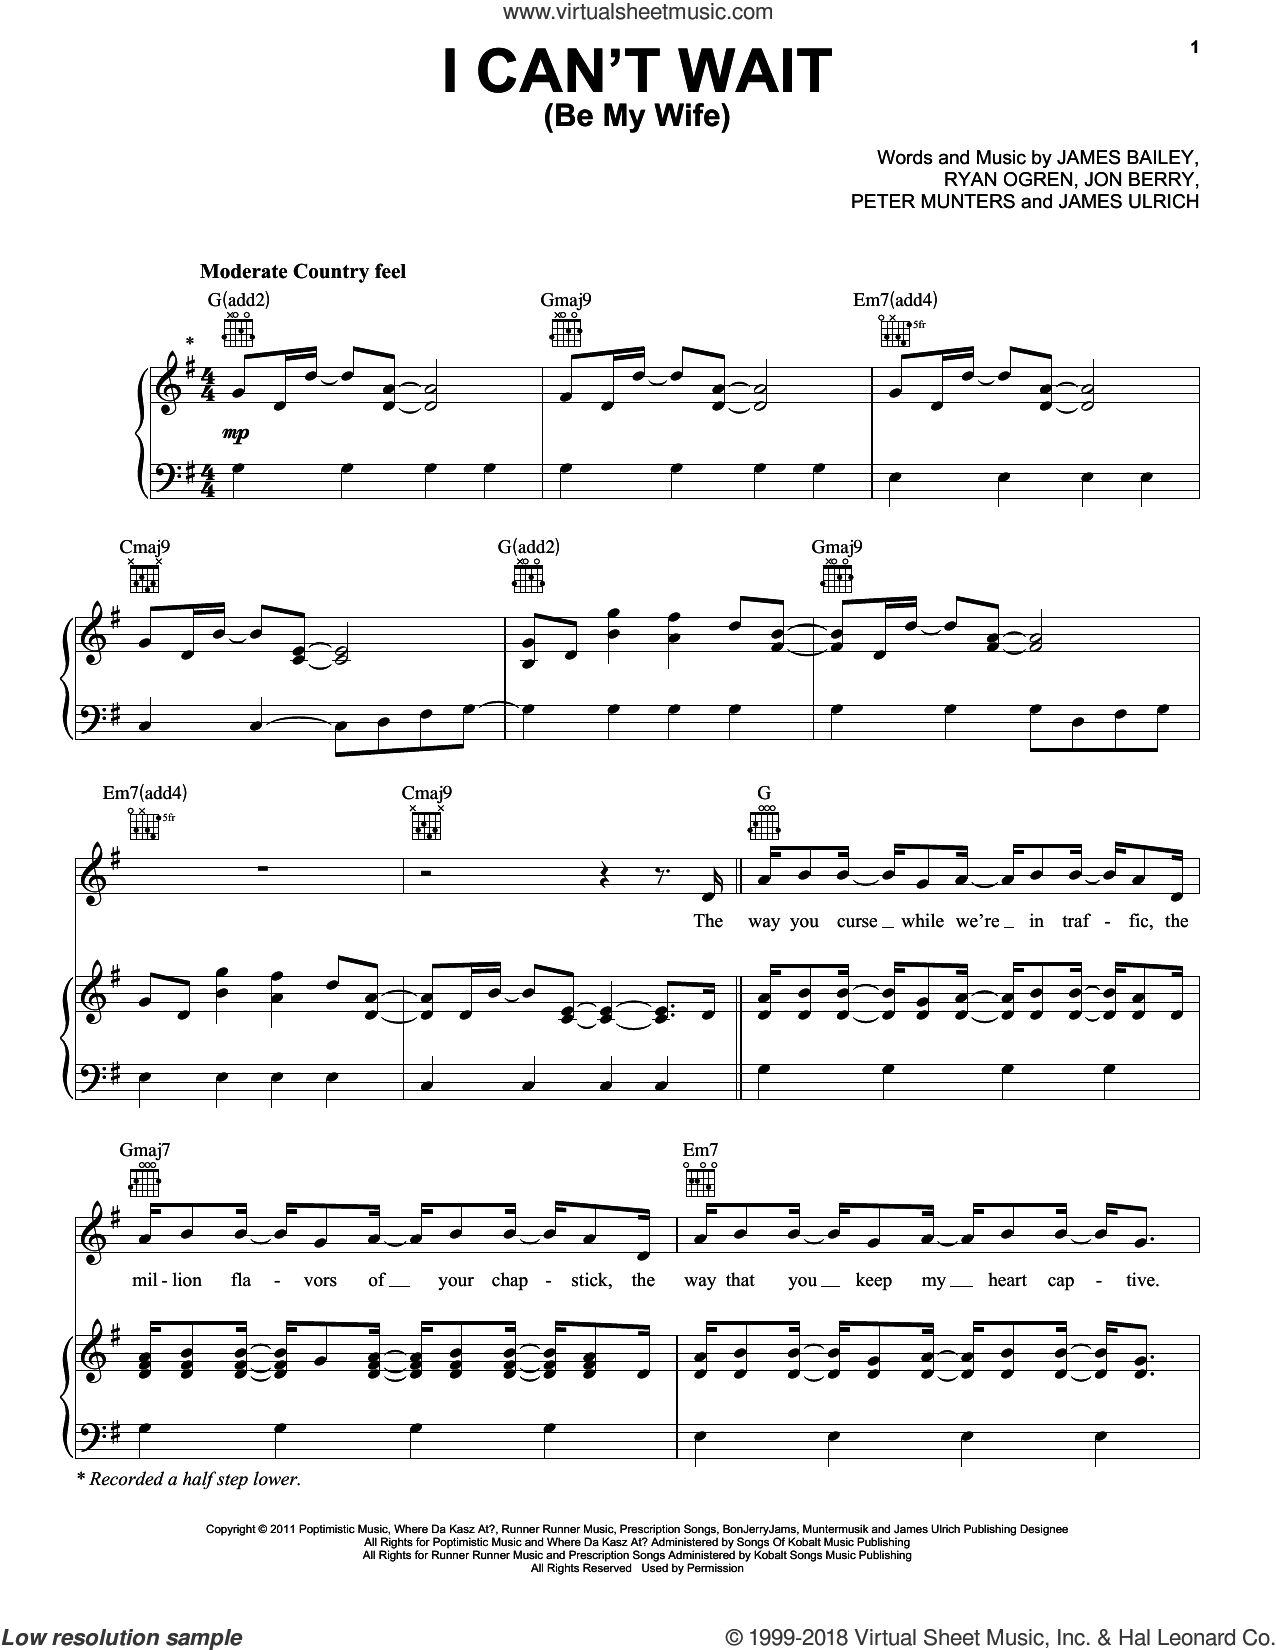 I Can't Wait (Be My Wife) sheet music for voice, piano or guitar by Ben Rue. Score Image Preview.